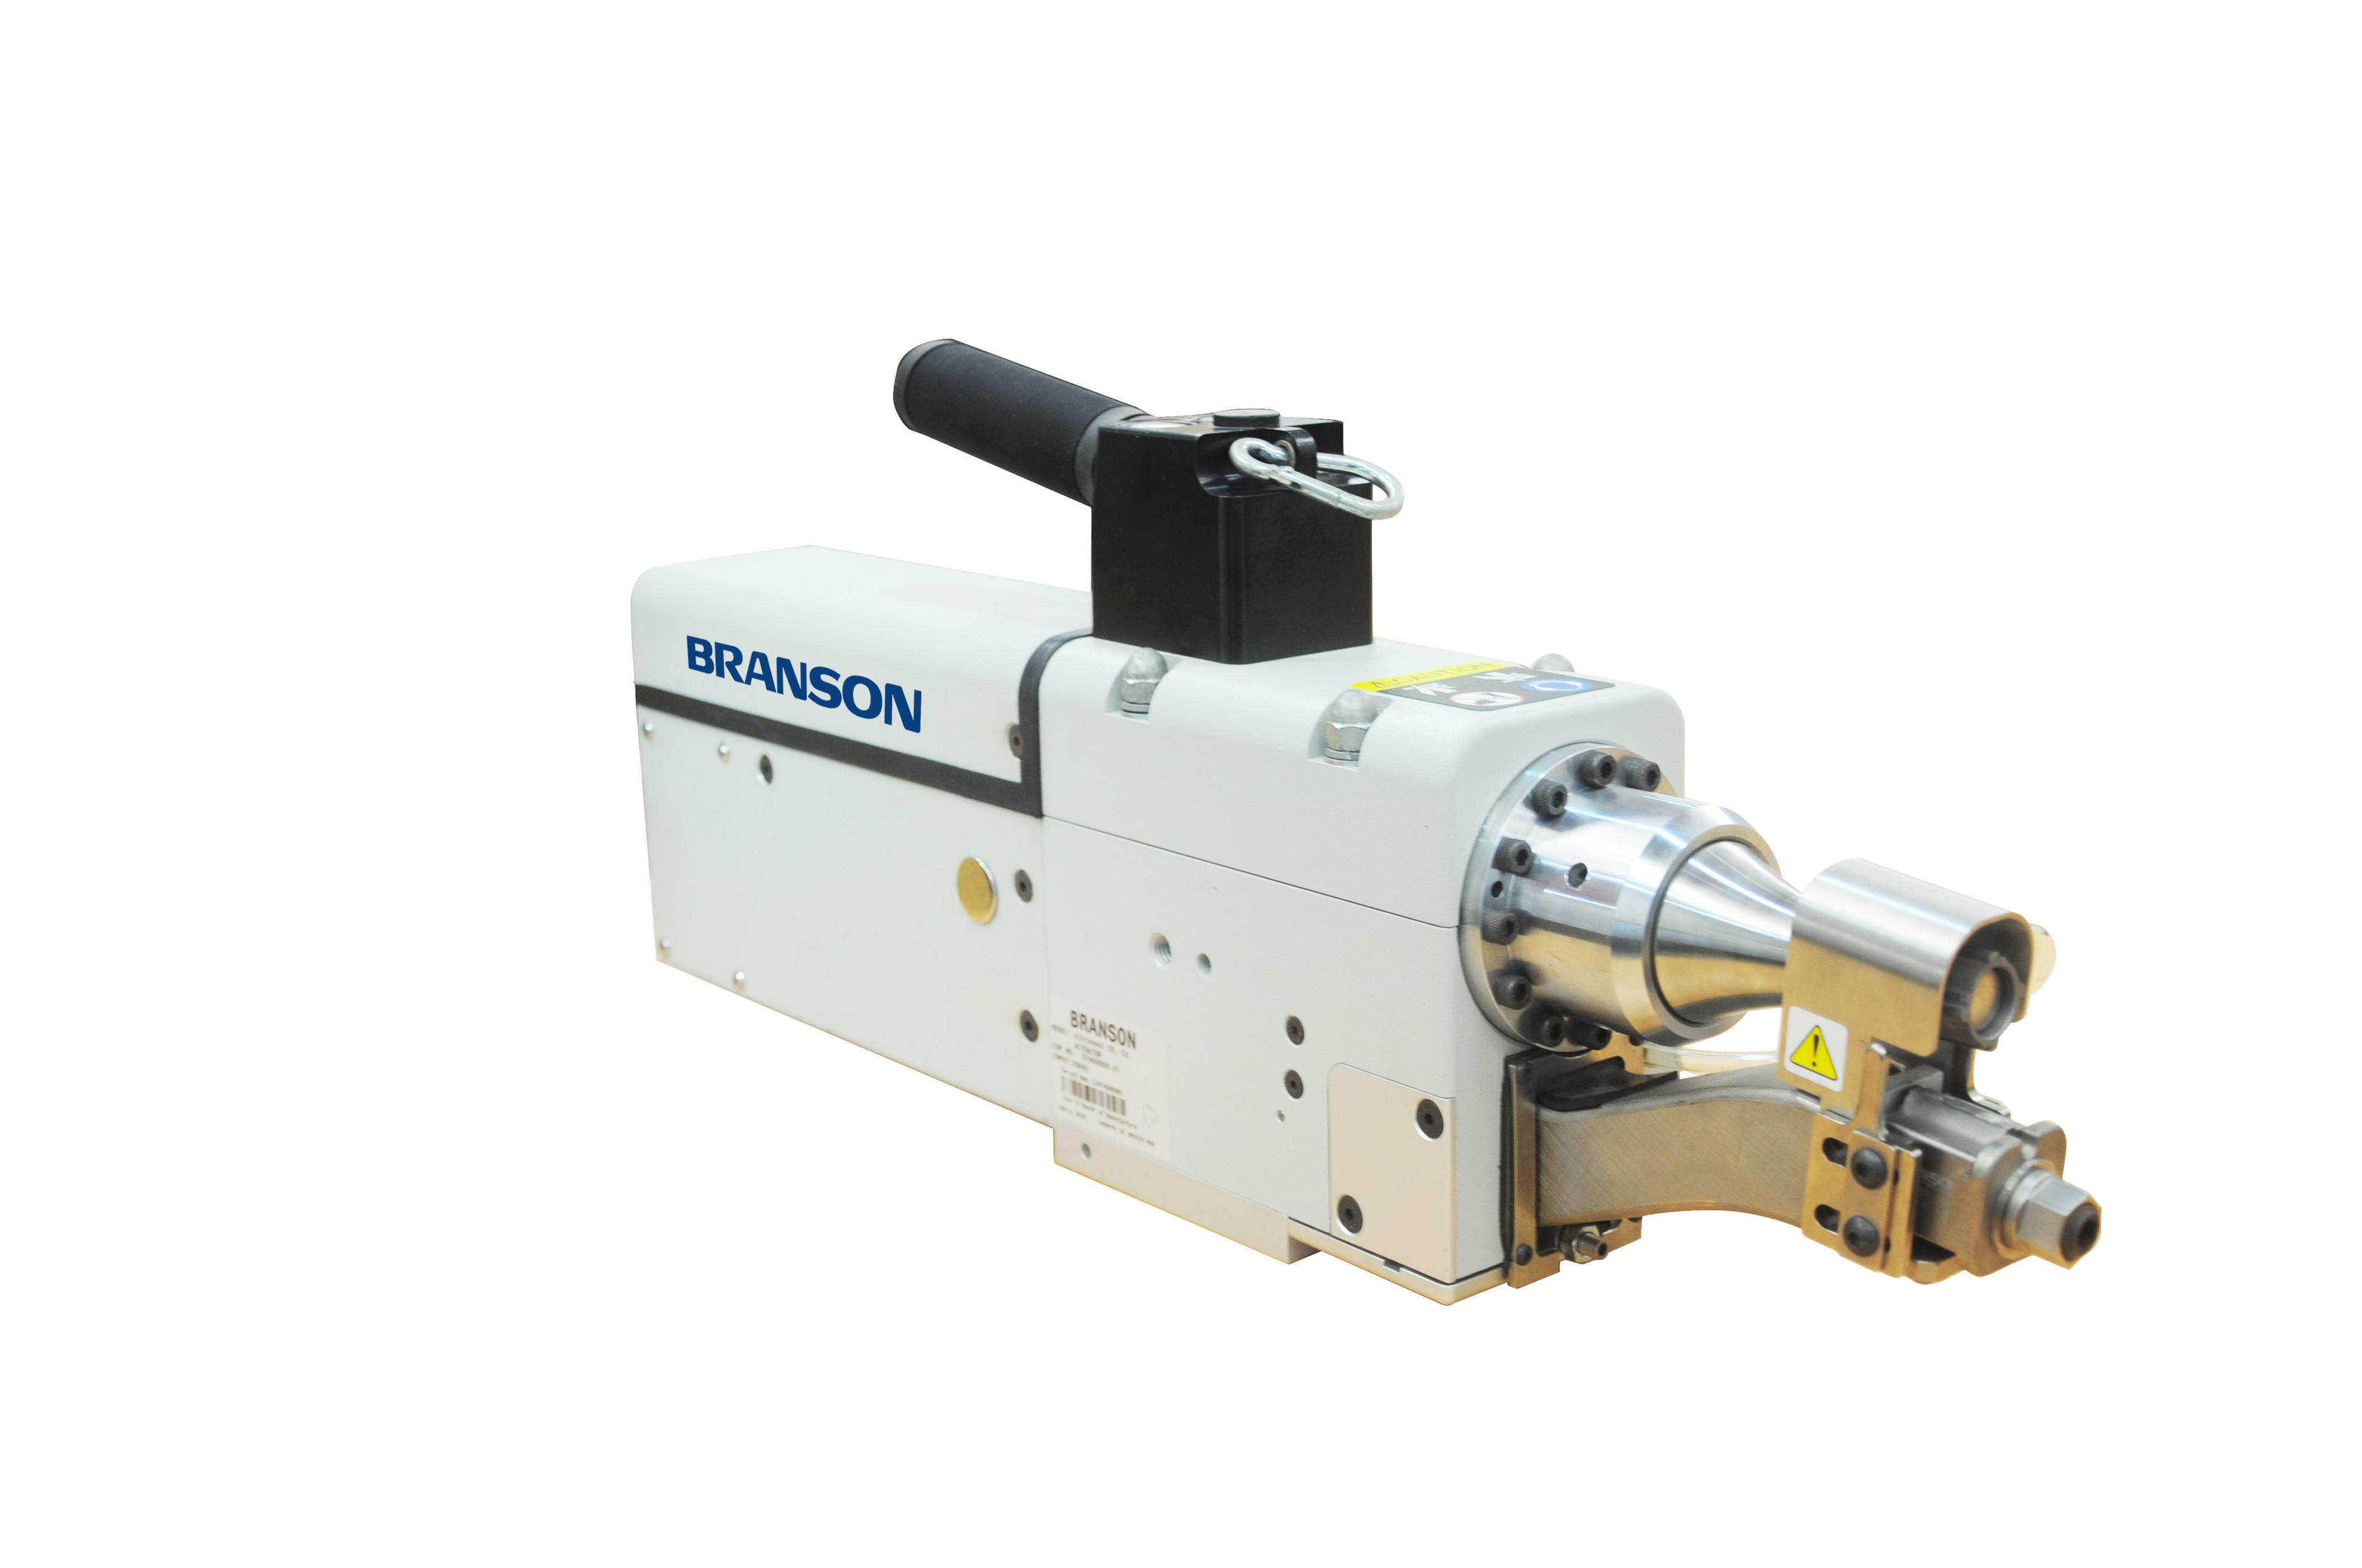 ultrasonic metal tube sealer branson data 148664 ultrasonic metal welding precision wire harness appleton wi at gsmx.co